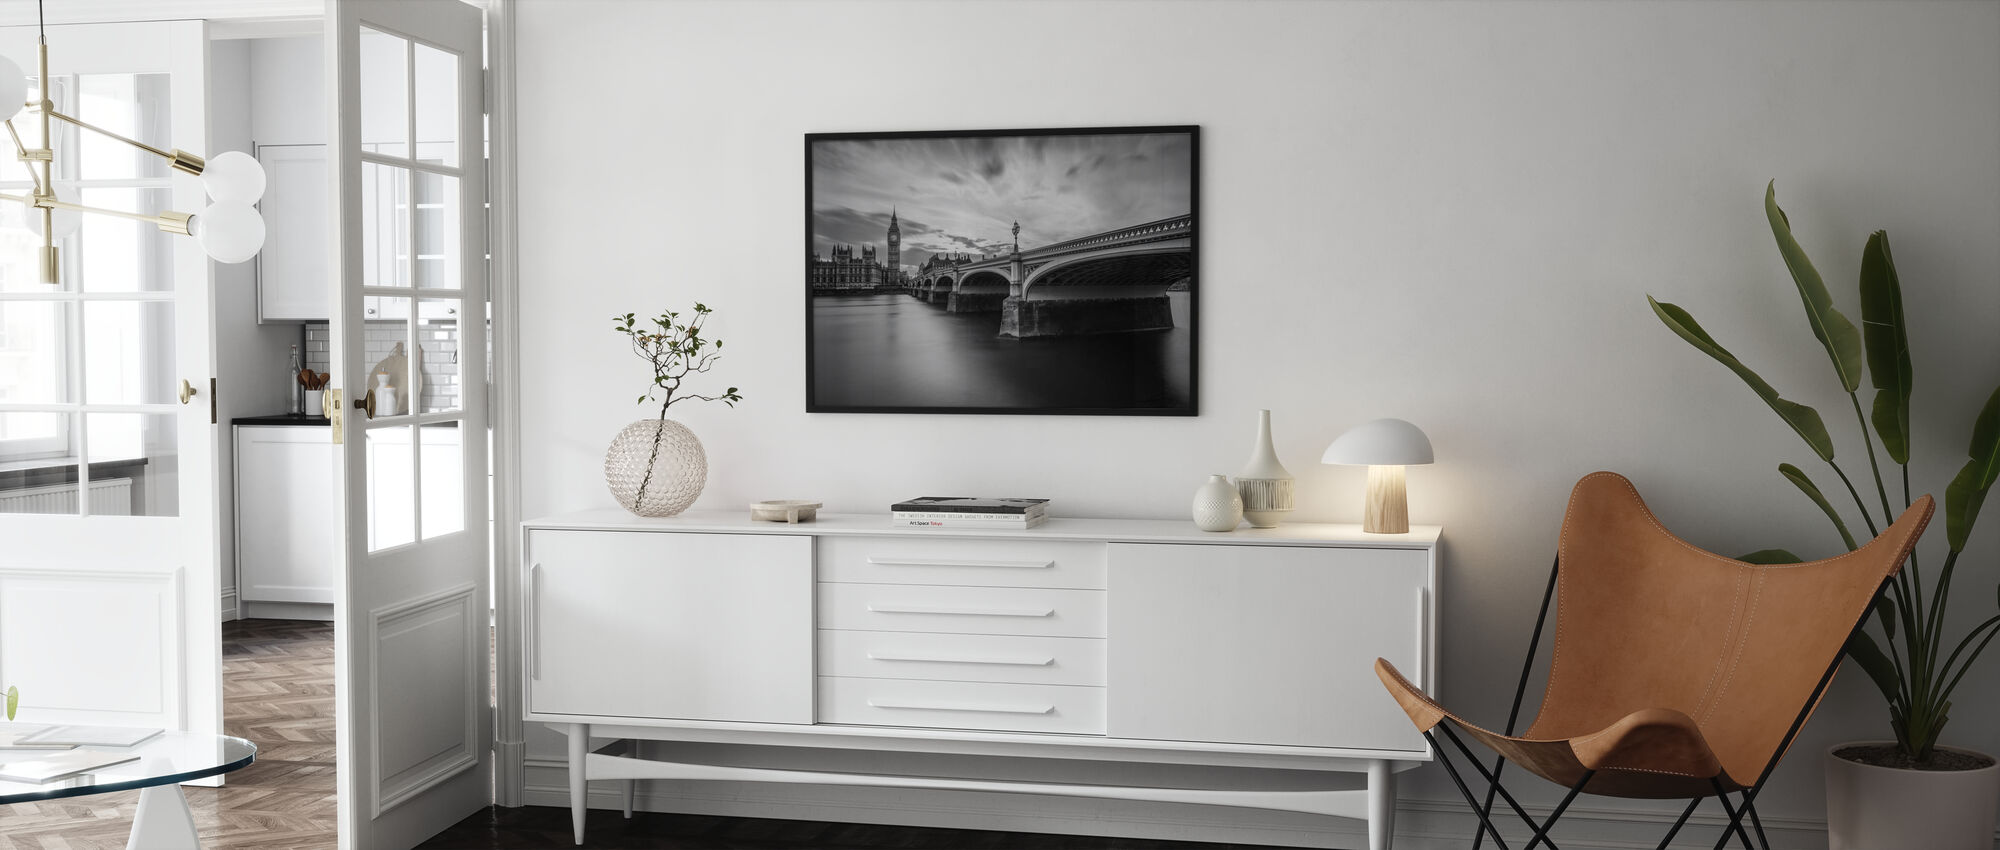 Westminster Serenity - Poster - Living Room